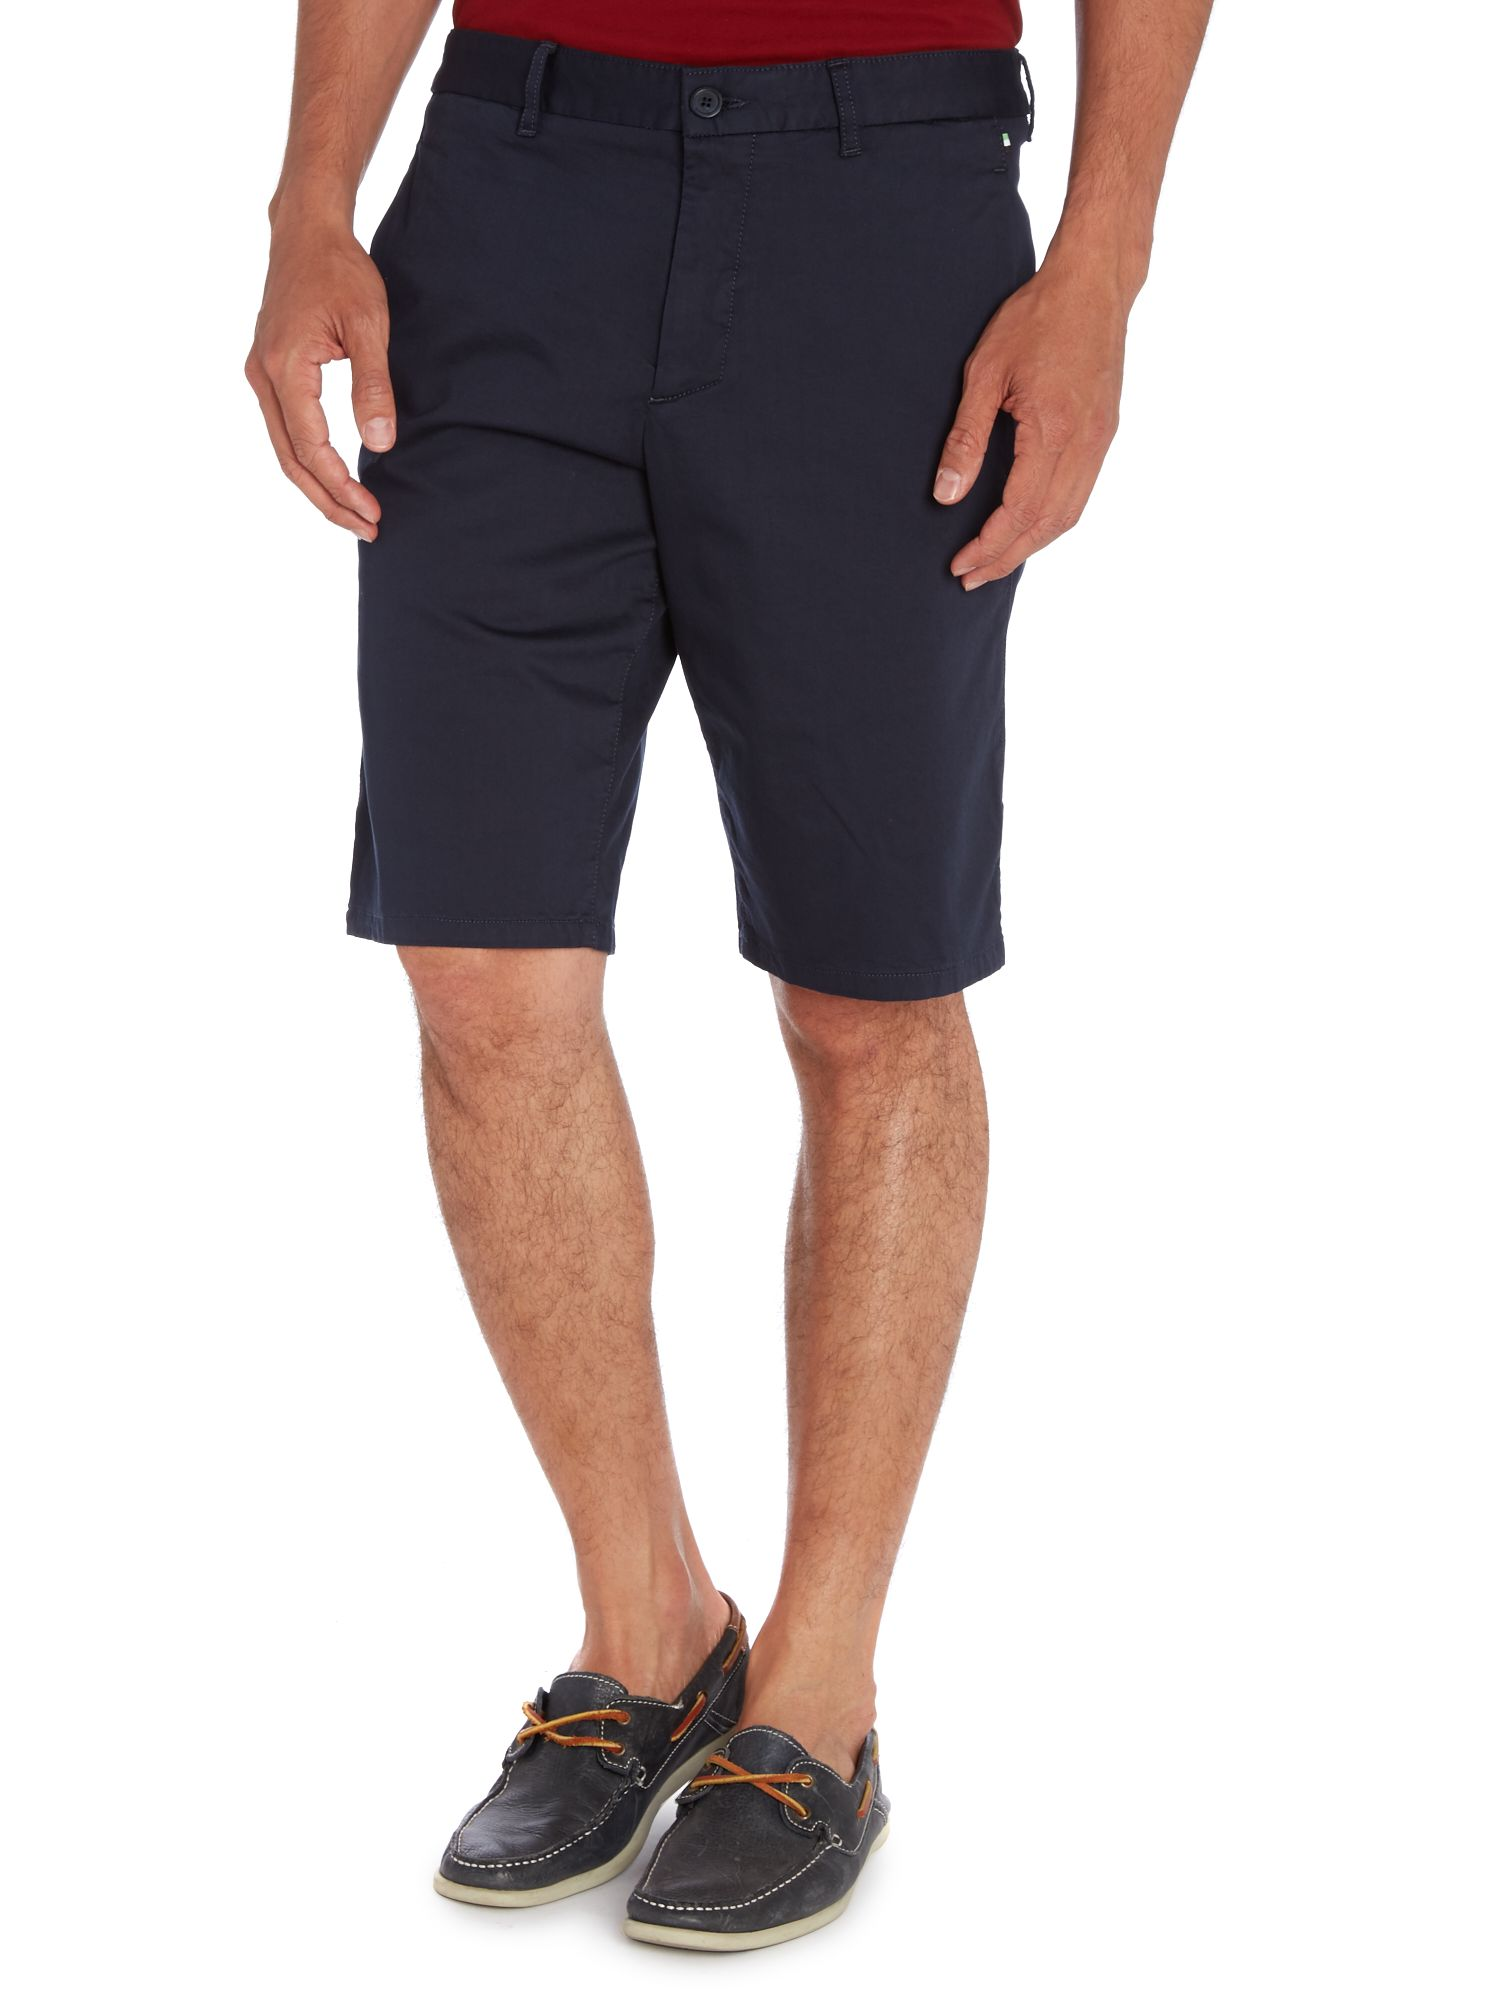 Two pocket chino shorts